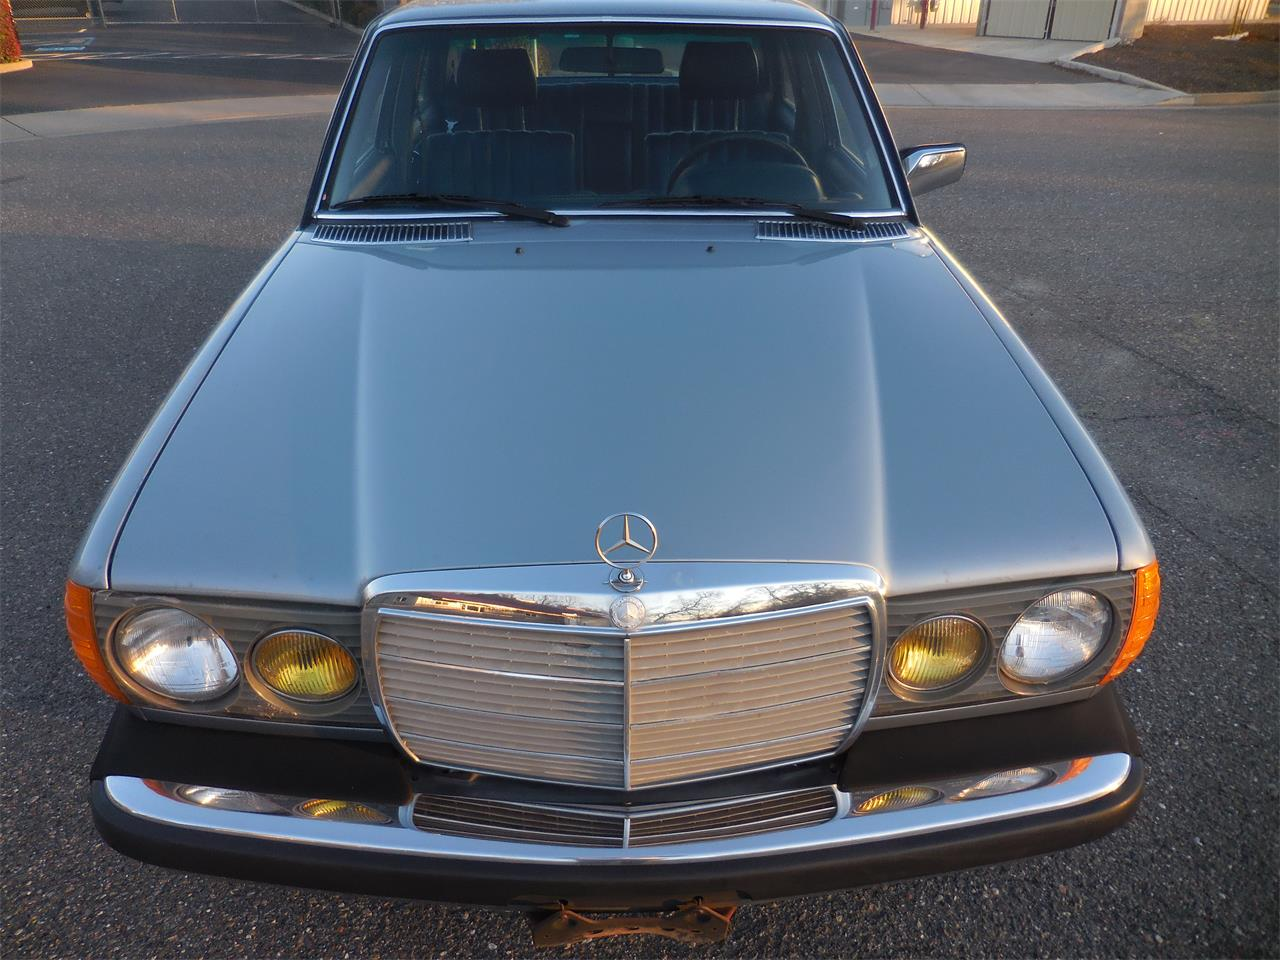 1982 Mercedes-Benz 300D for sale in Anderson, CA – photo 18